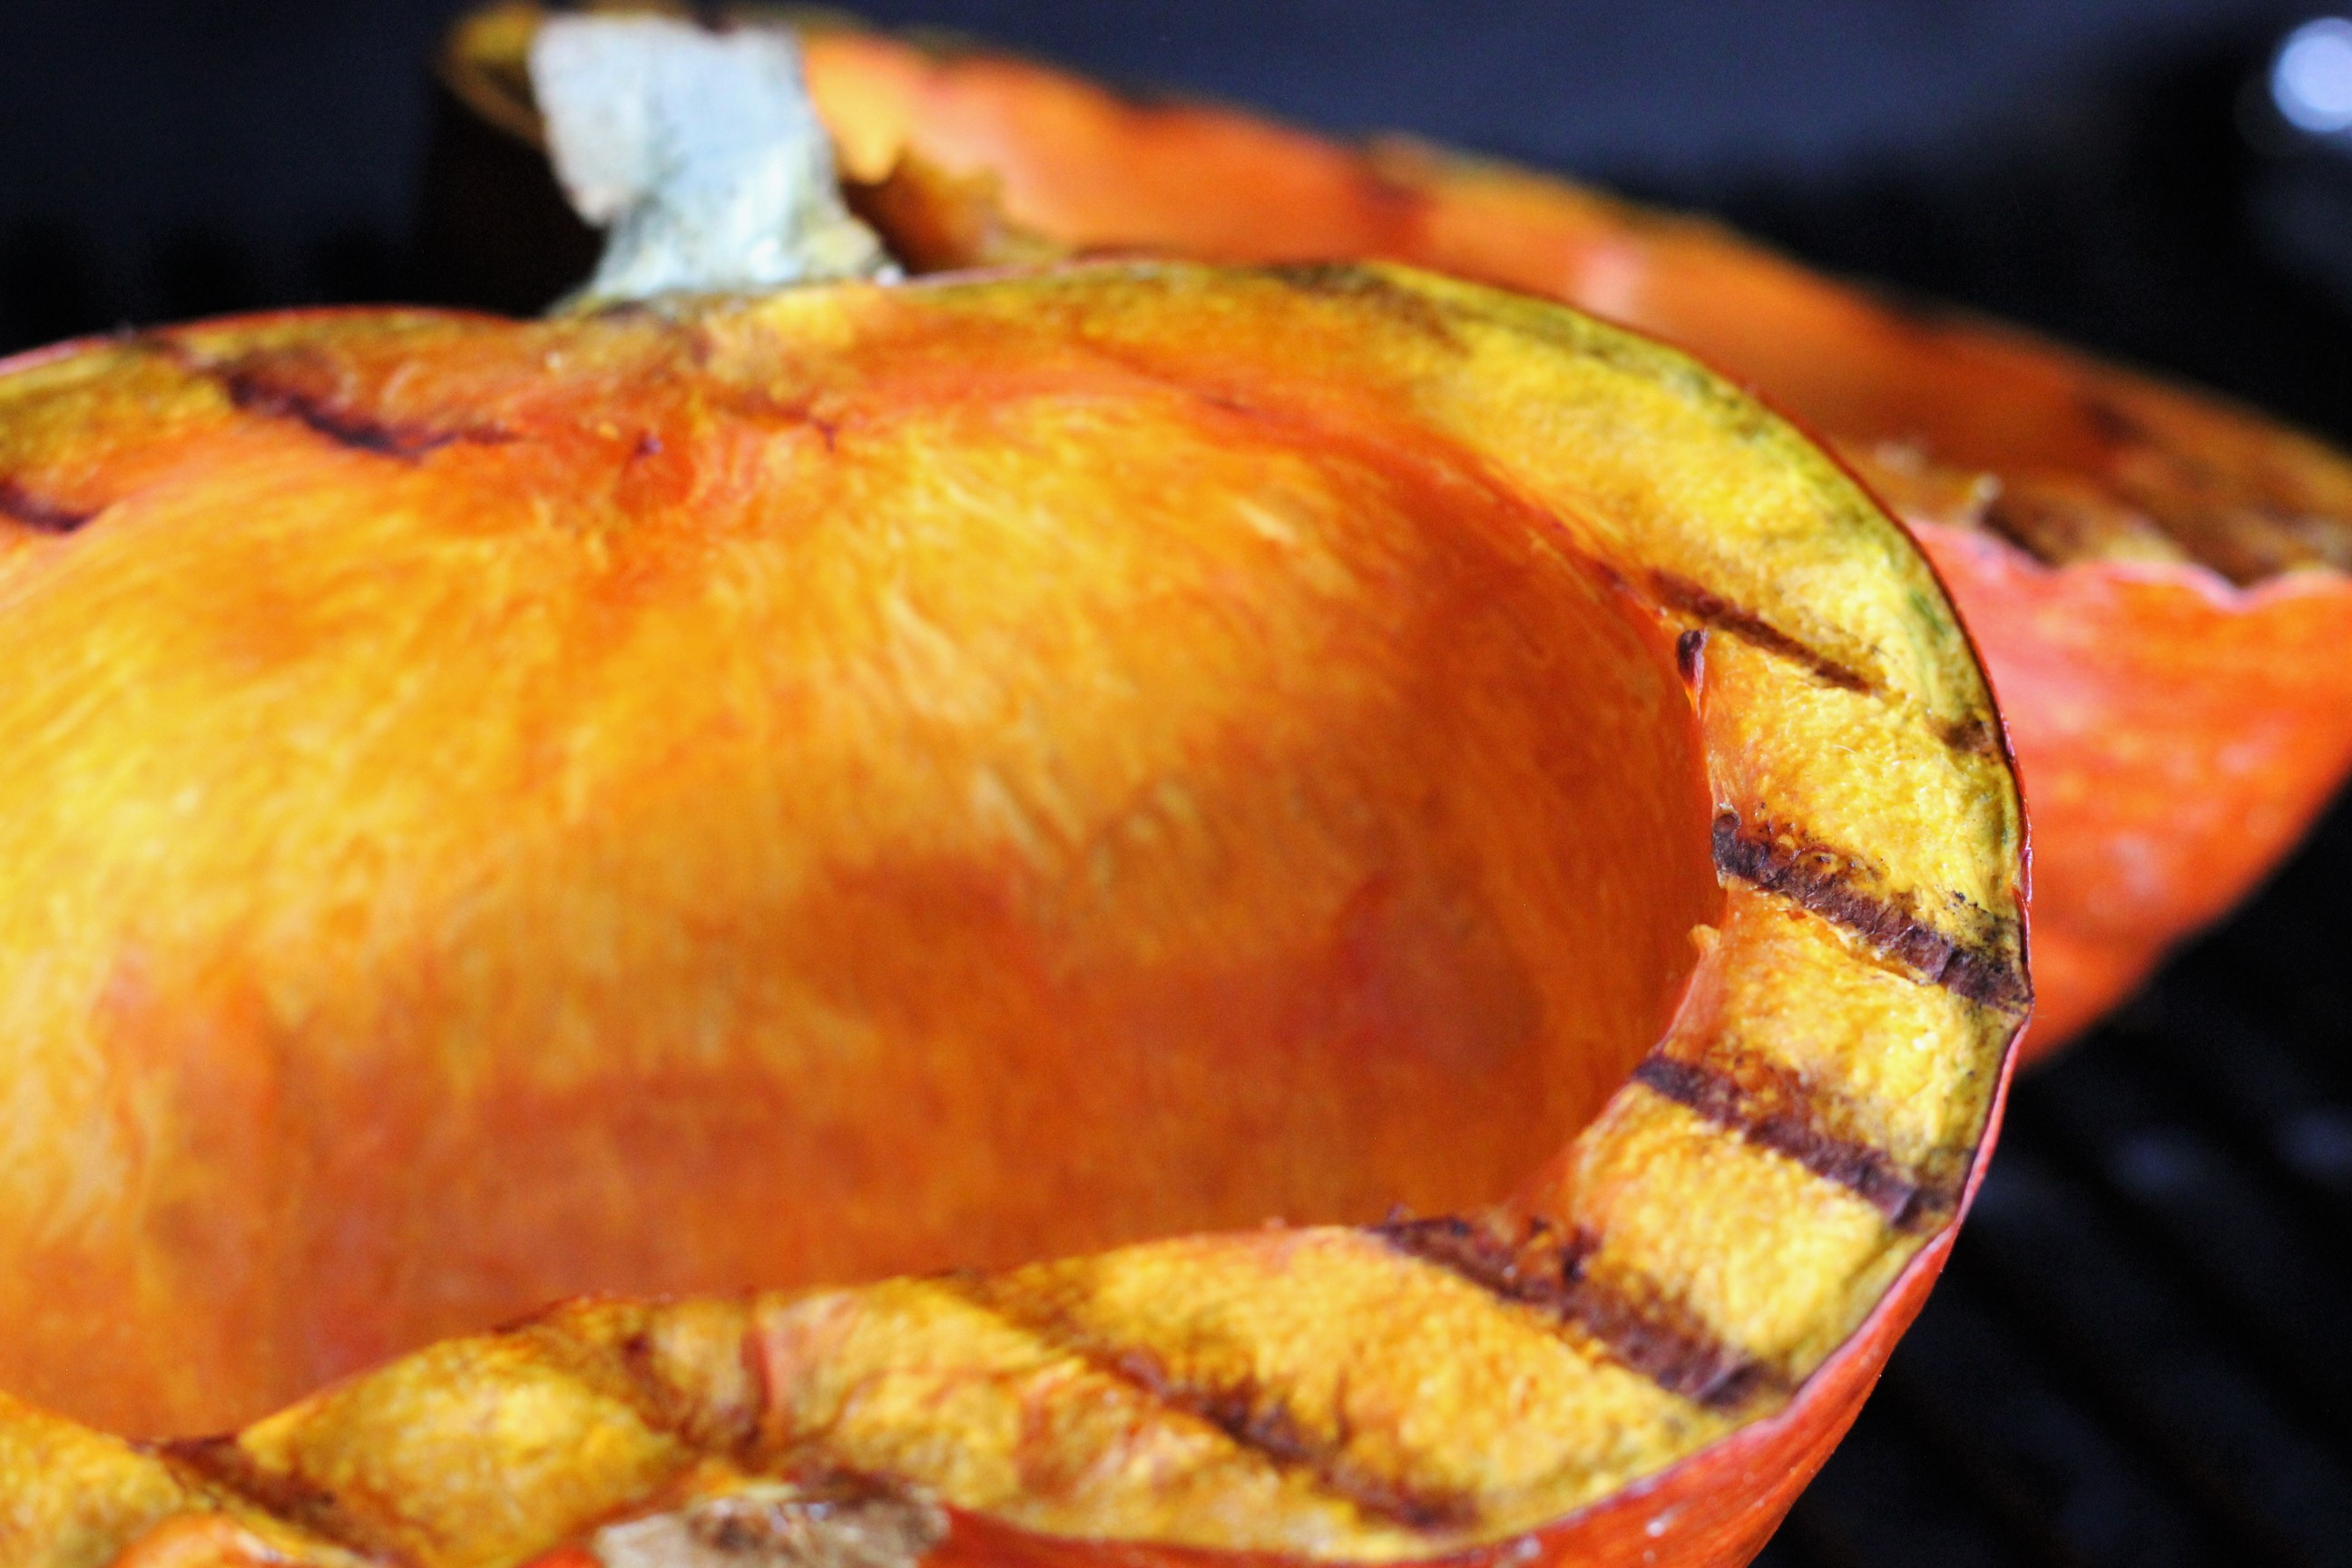 Pumpkin sliced in half and grilled.